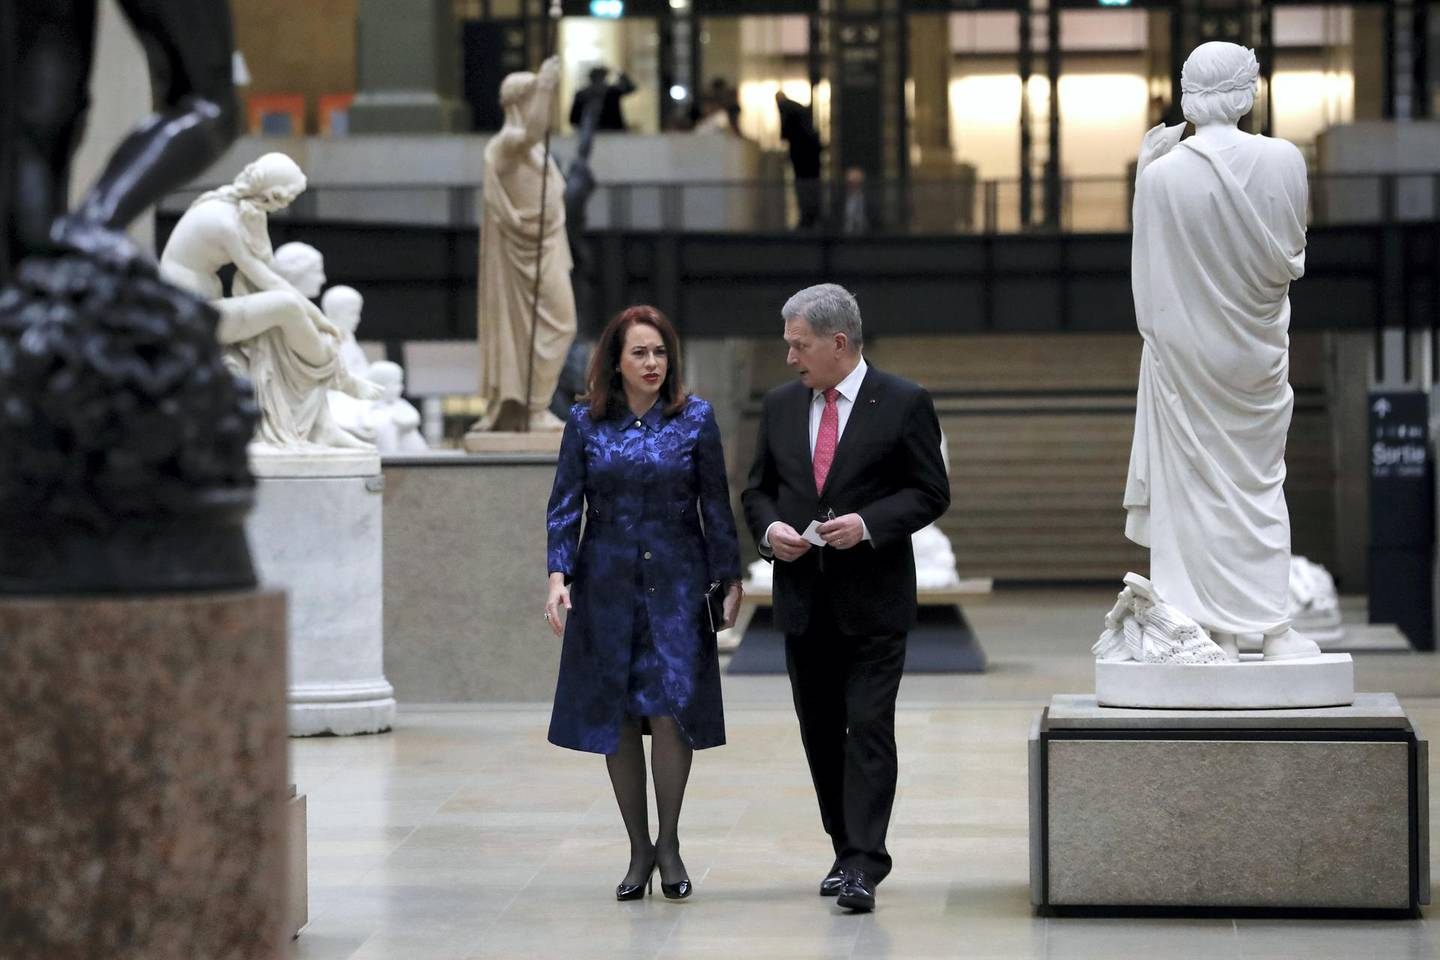 Maria Fernanda Espinosa Garces, President of the 73rd United Nations General Assembly (L) and guest arrive at the Musee d'Orsay in Paris on November 10, 2018 to attend a state diner and a visit of the Picasso exhibition as part of ceremonies marking the 100th anniversary of the 11 November 1918 armistice, ending World War I. (Photo by Ian LANGSDON / POOL / AFP)